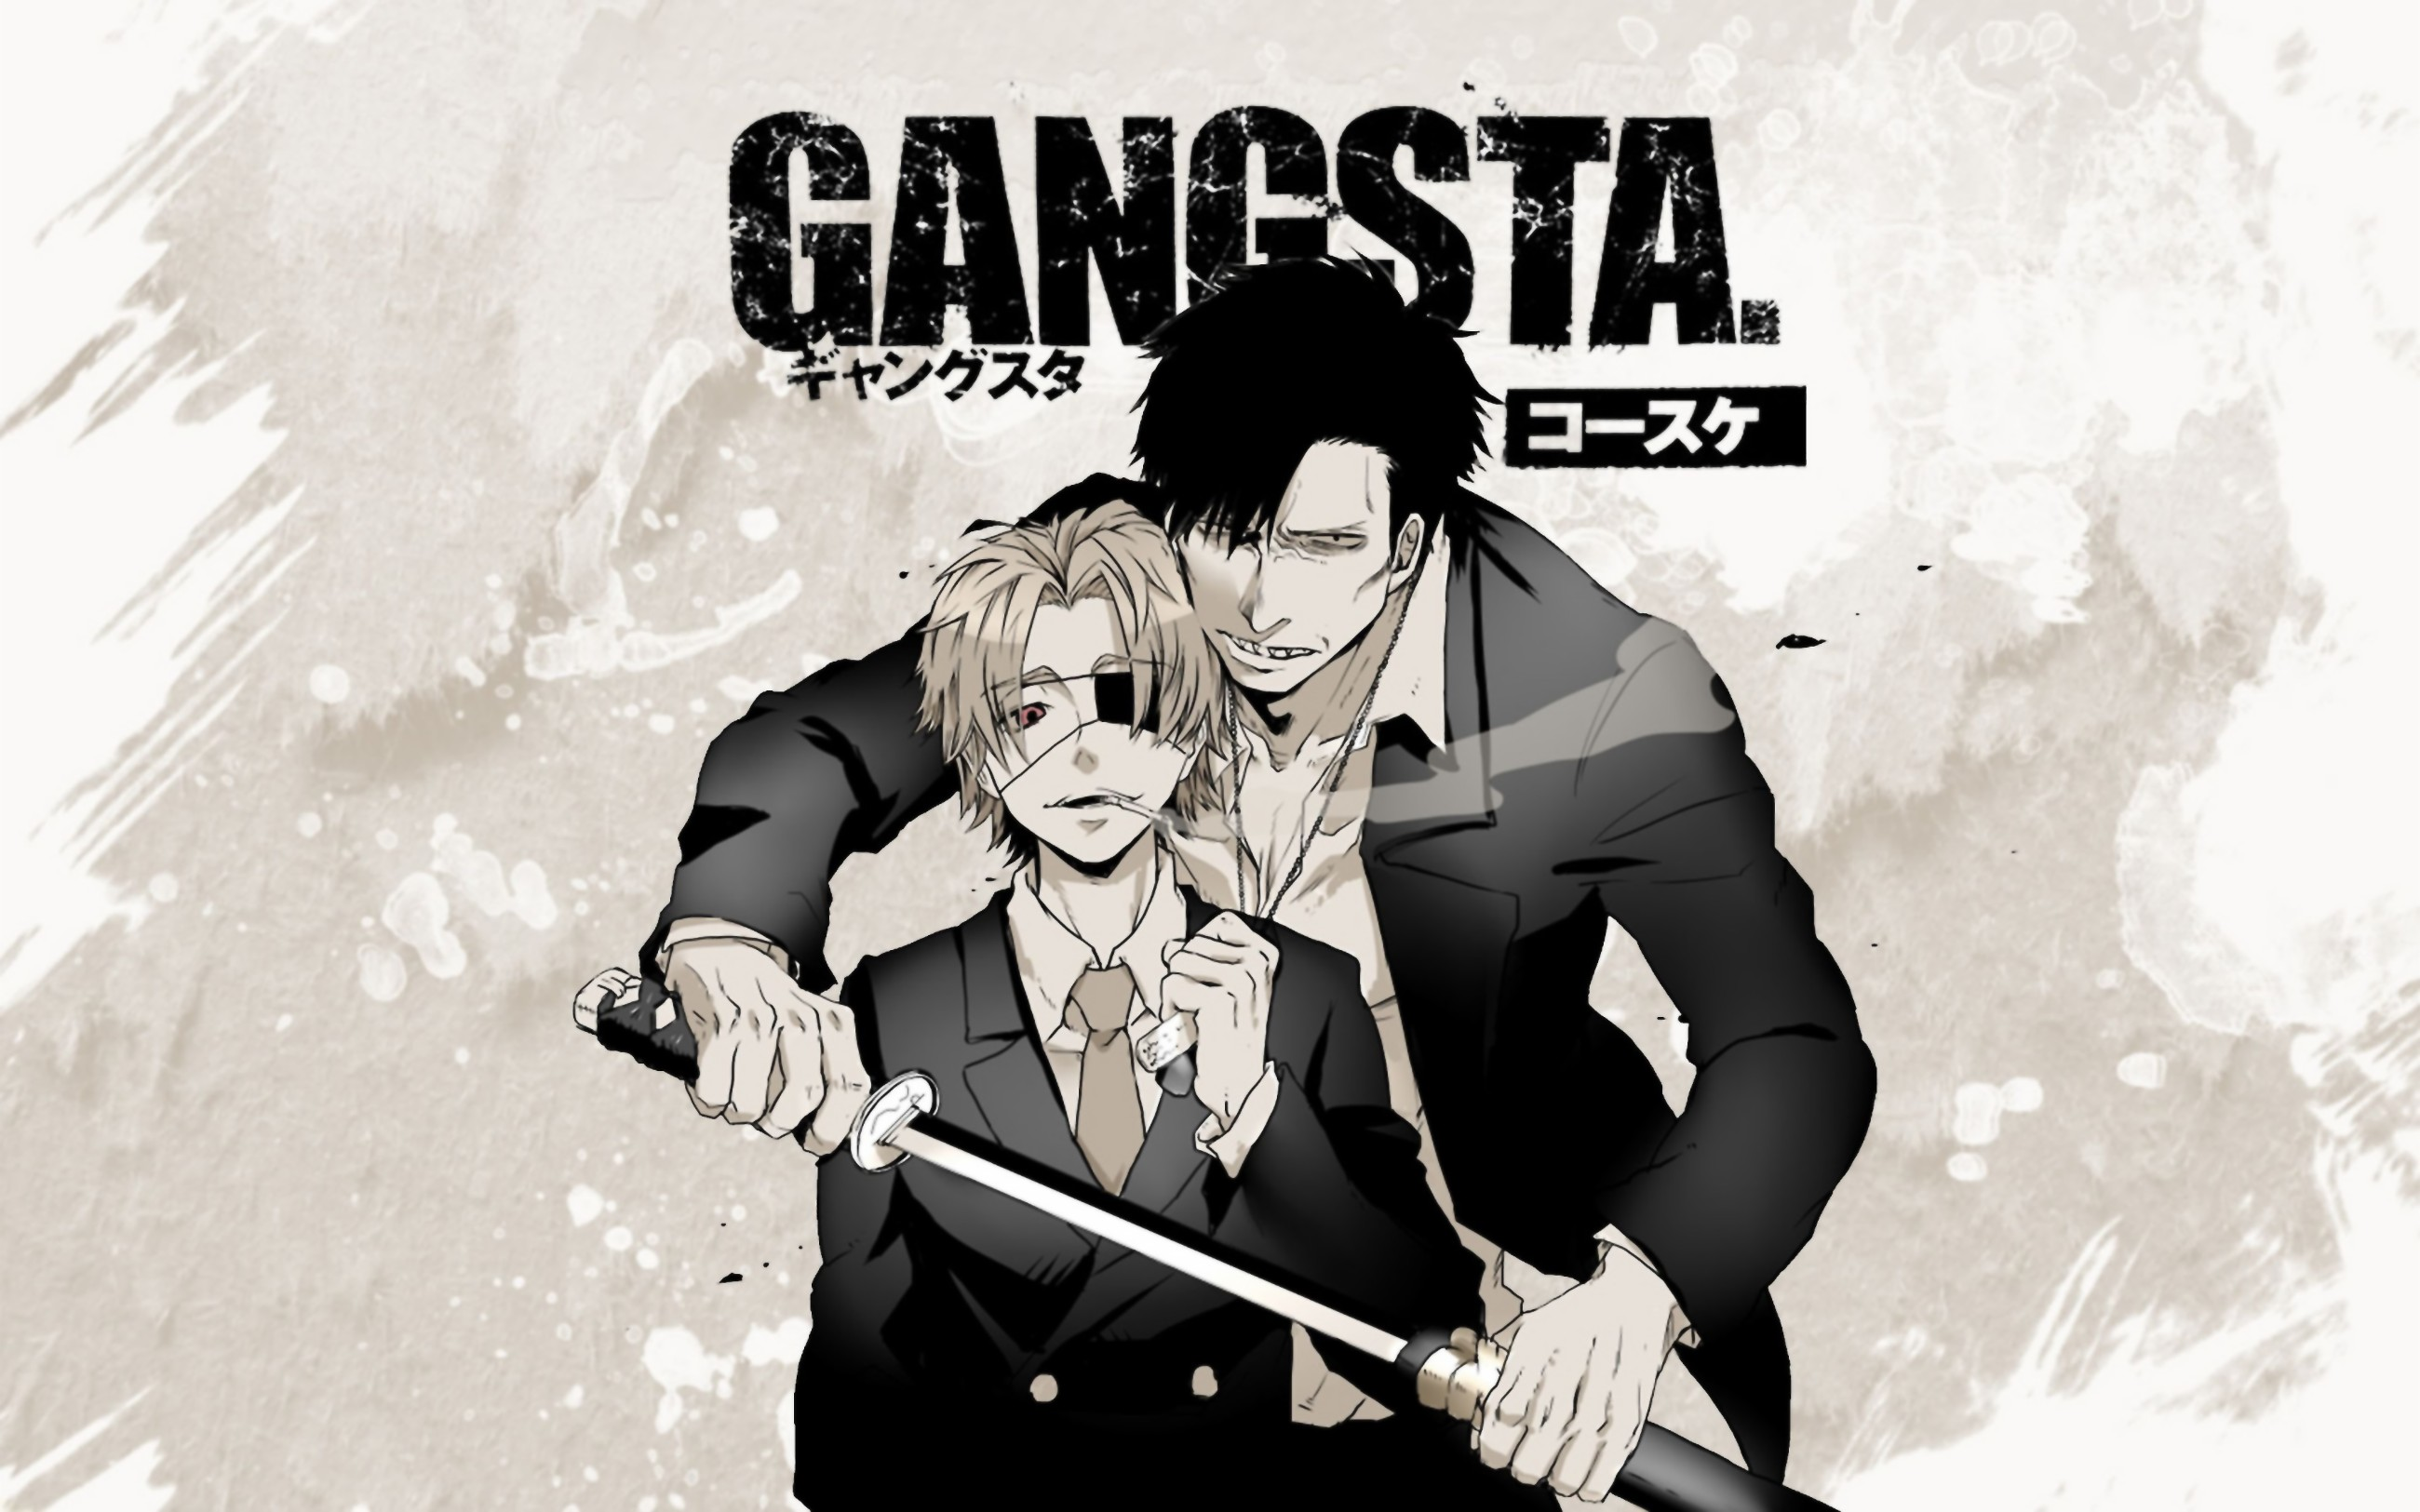 2600x1625 hd wallpaper background id755828 2600x1625 anime gangsta